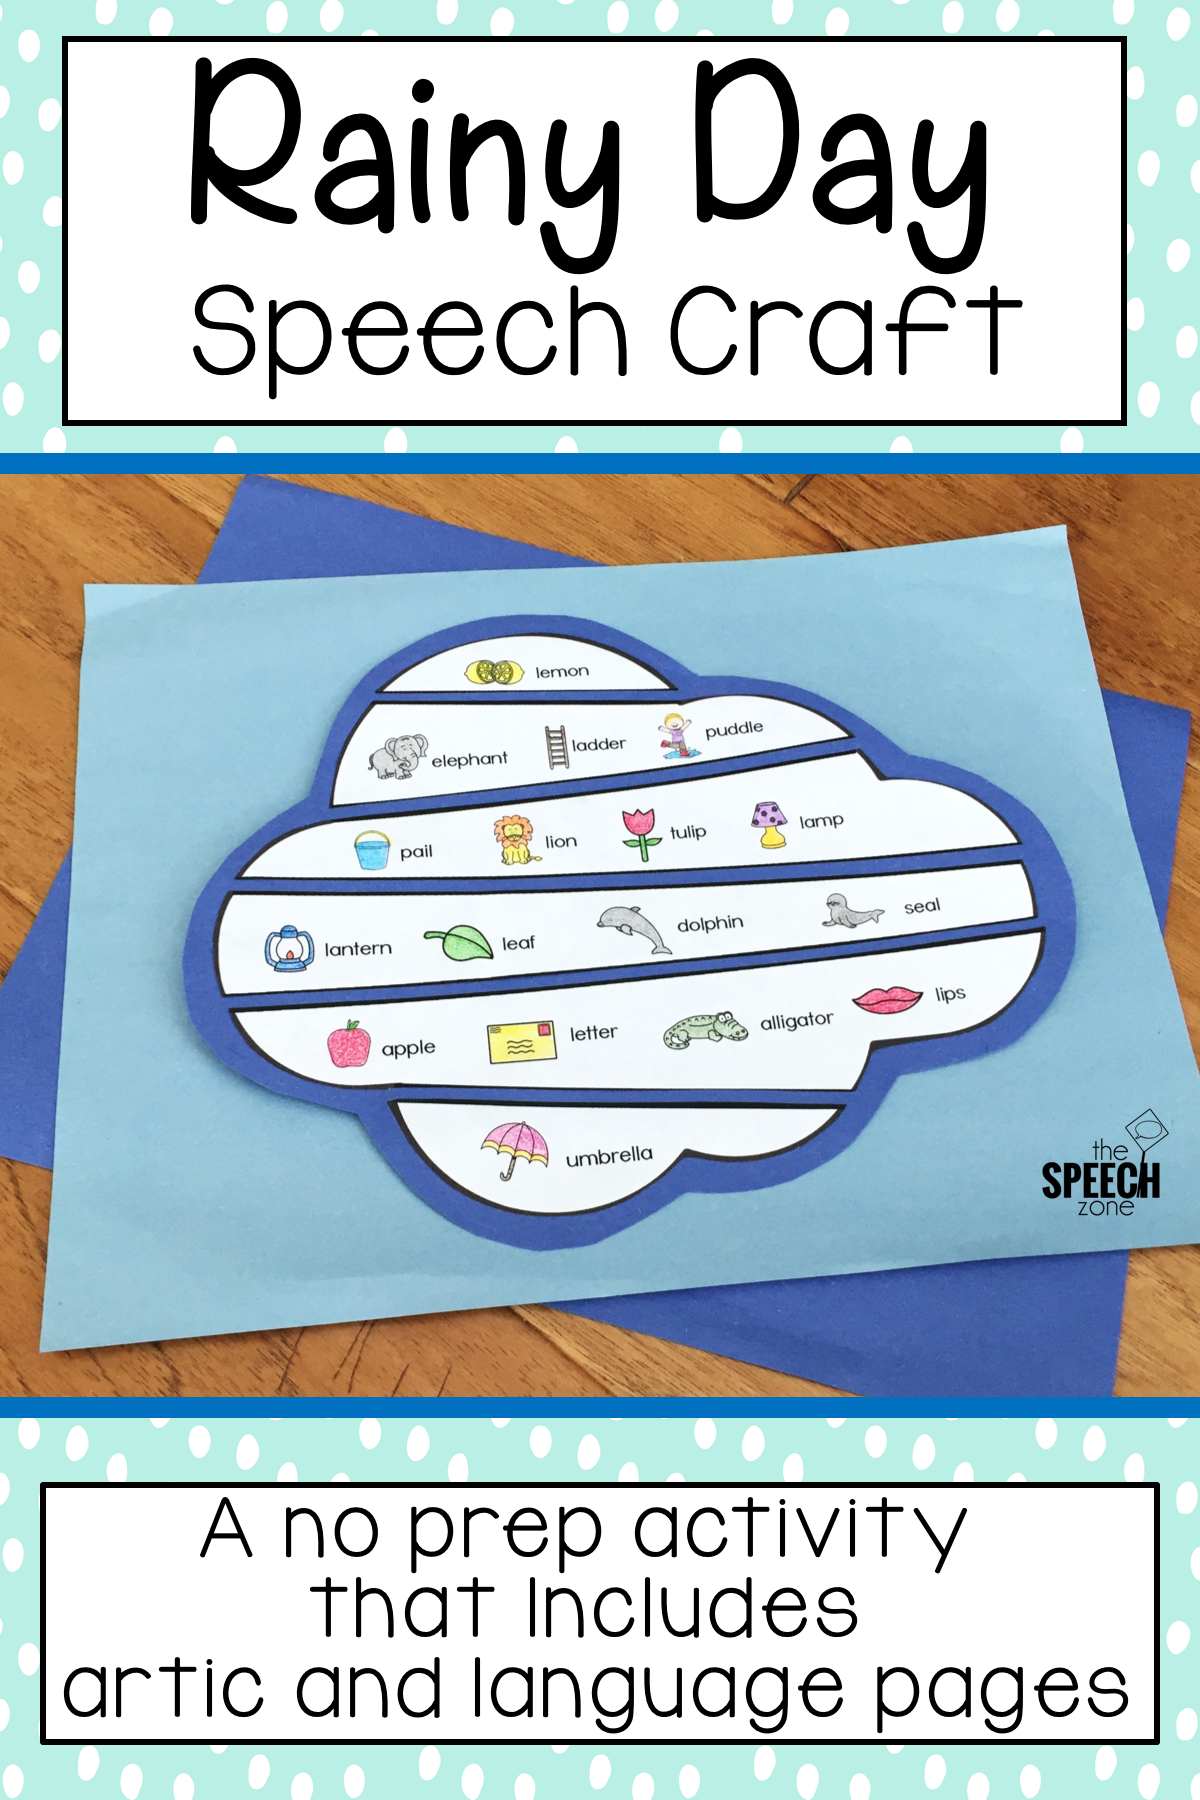 Spring Cloud Speech Craft